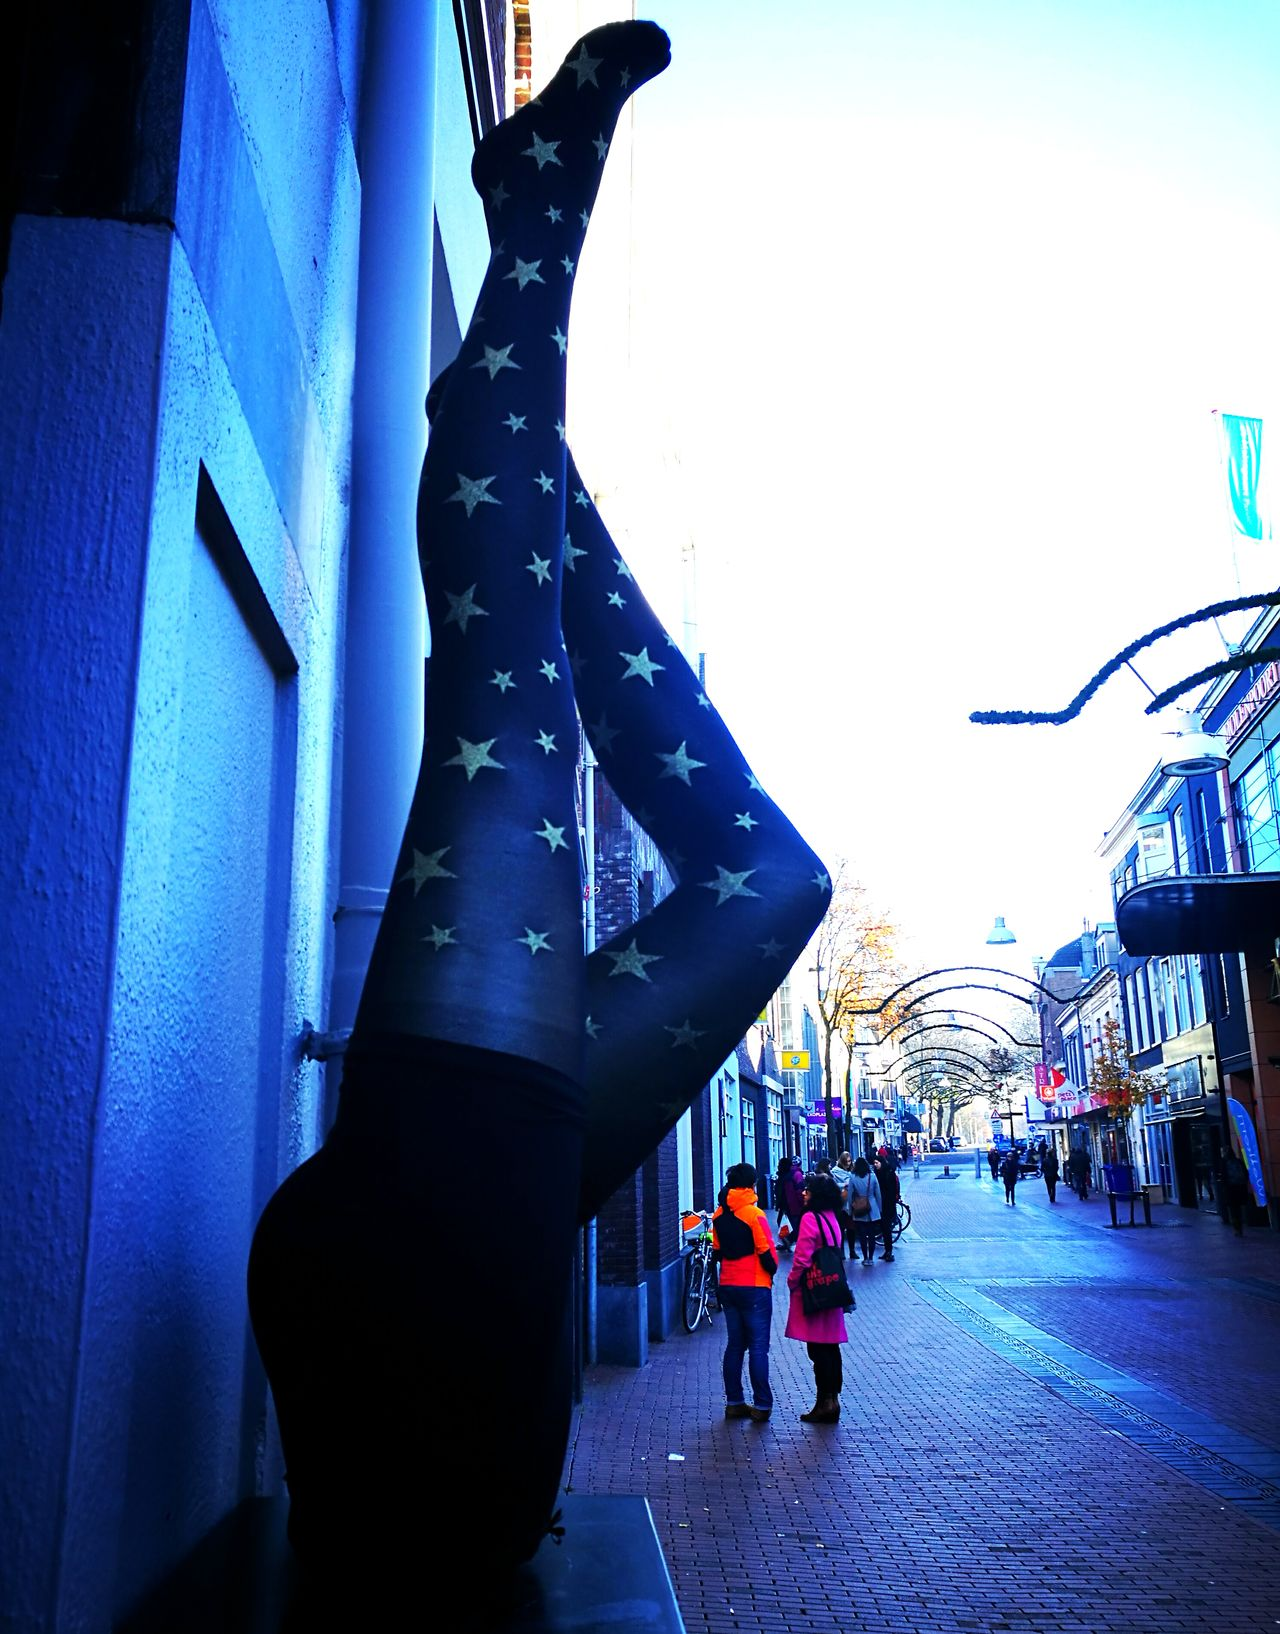 Enjoy The New Normal Exploring Style City People Outdoors Cold Temperature Stars Collants Collants Black Mini Skirt Upside Down Legs Human Body Part My Year My View TakeoverMusic Finding New Frontiers The City Light